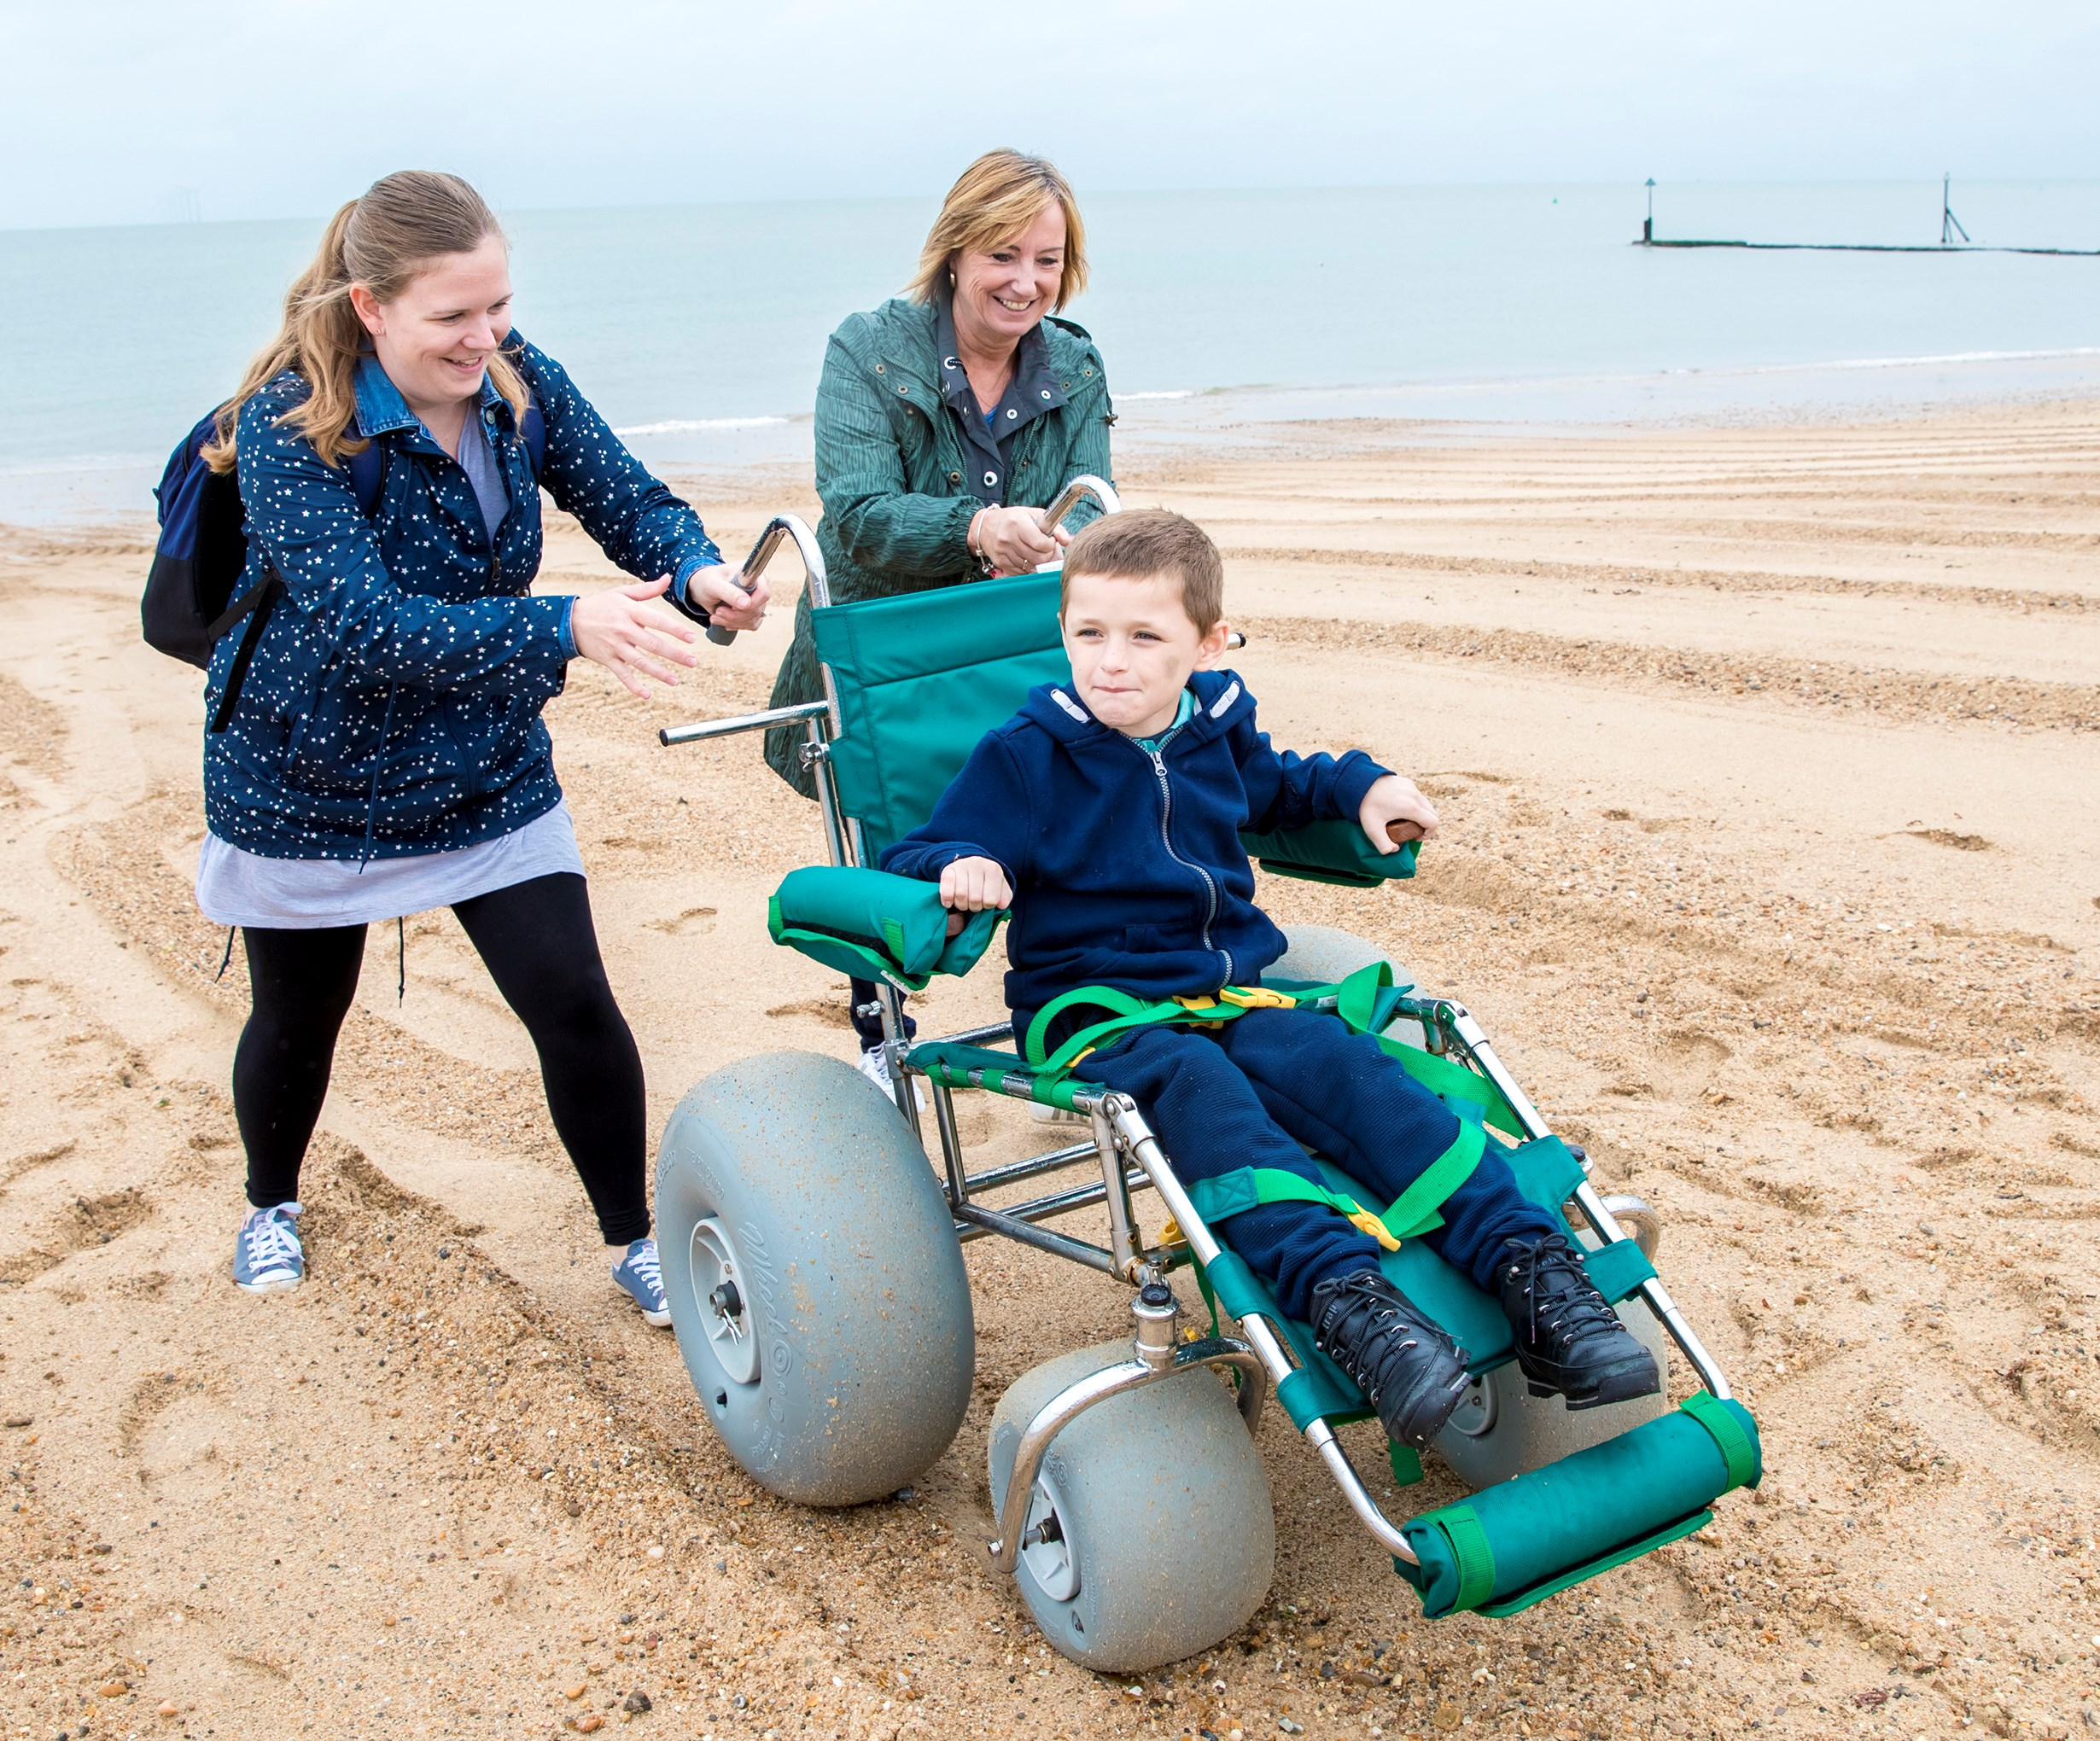 Two smiling women pushing a young boy in a wheelchair on a beach